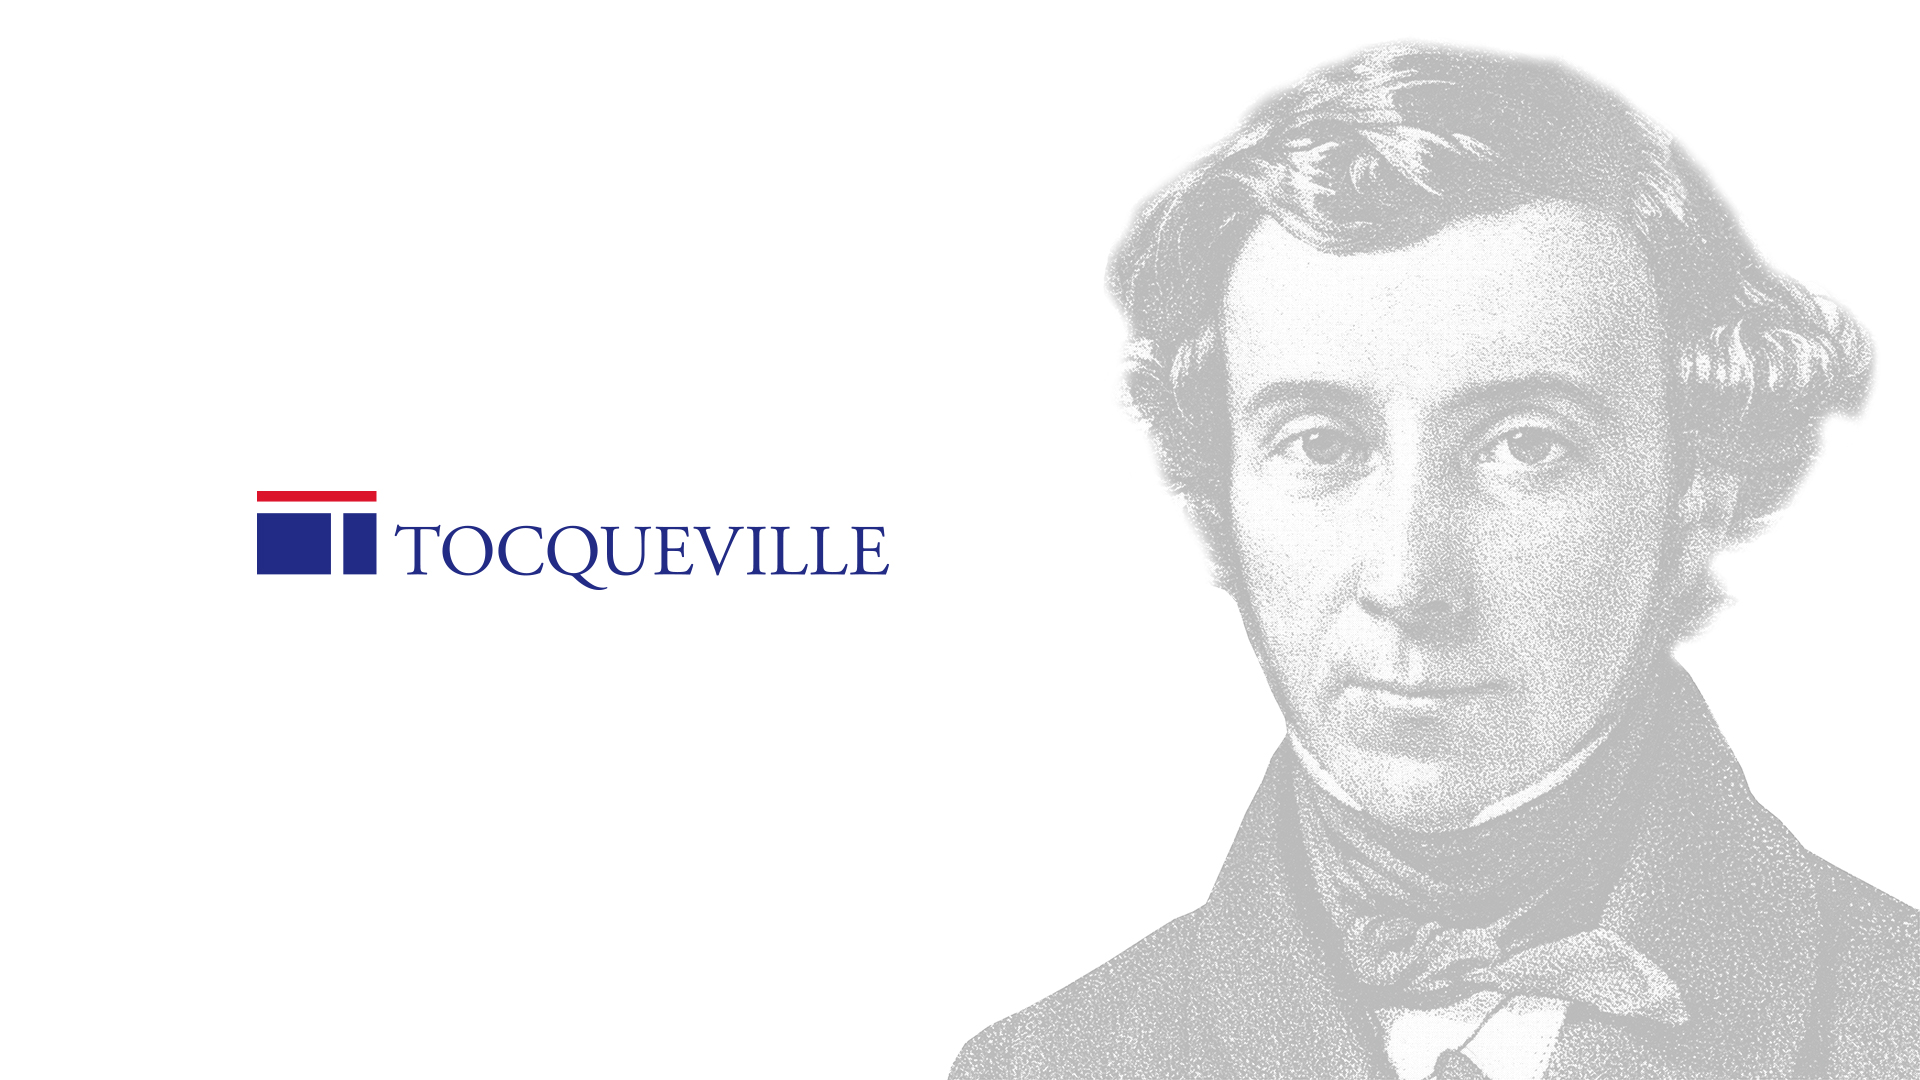 Tocqueville Website Design Preview